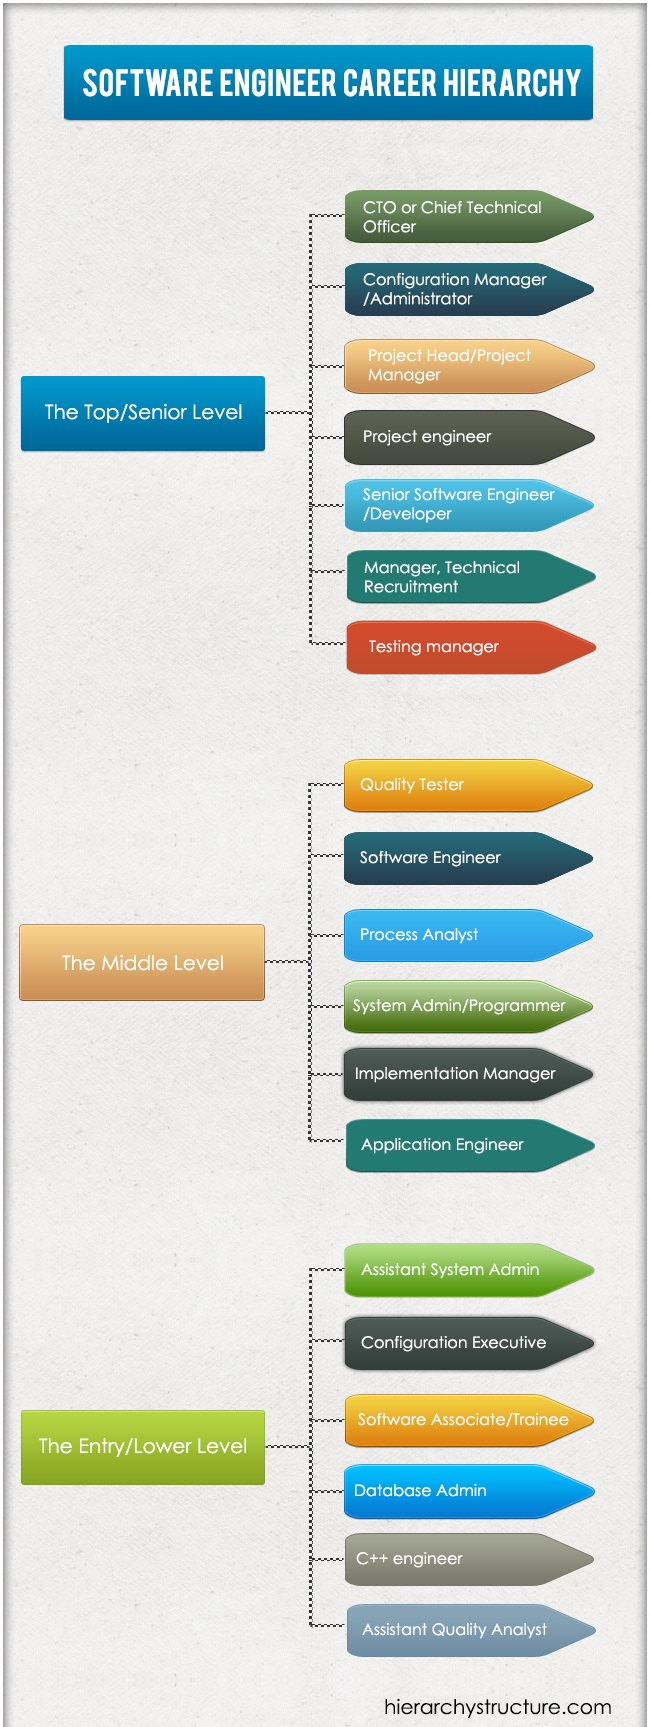 Software Engineer Career Hierarchy